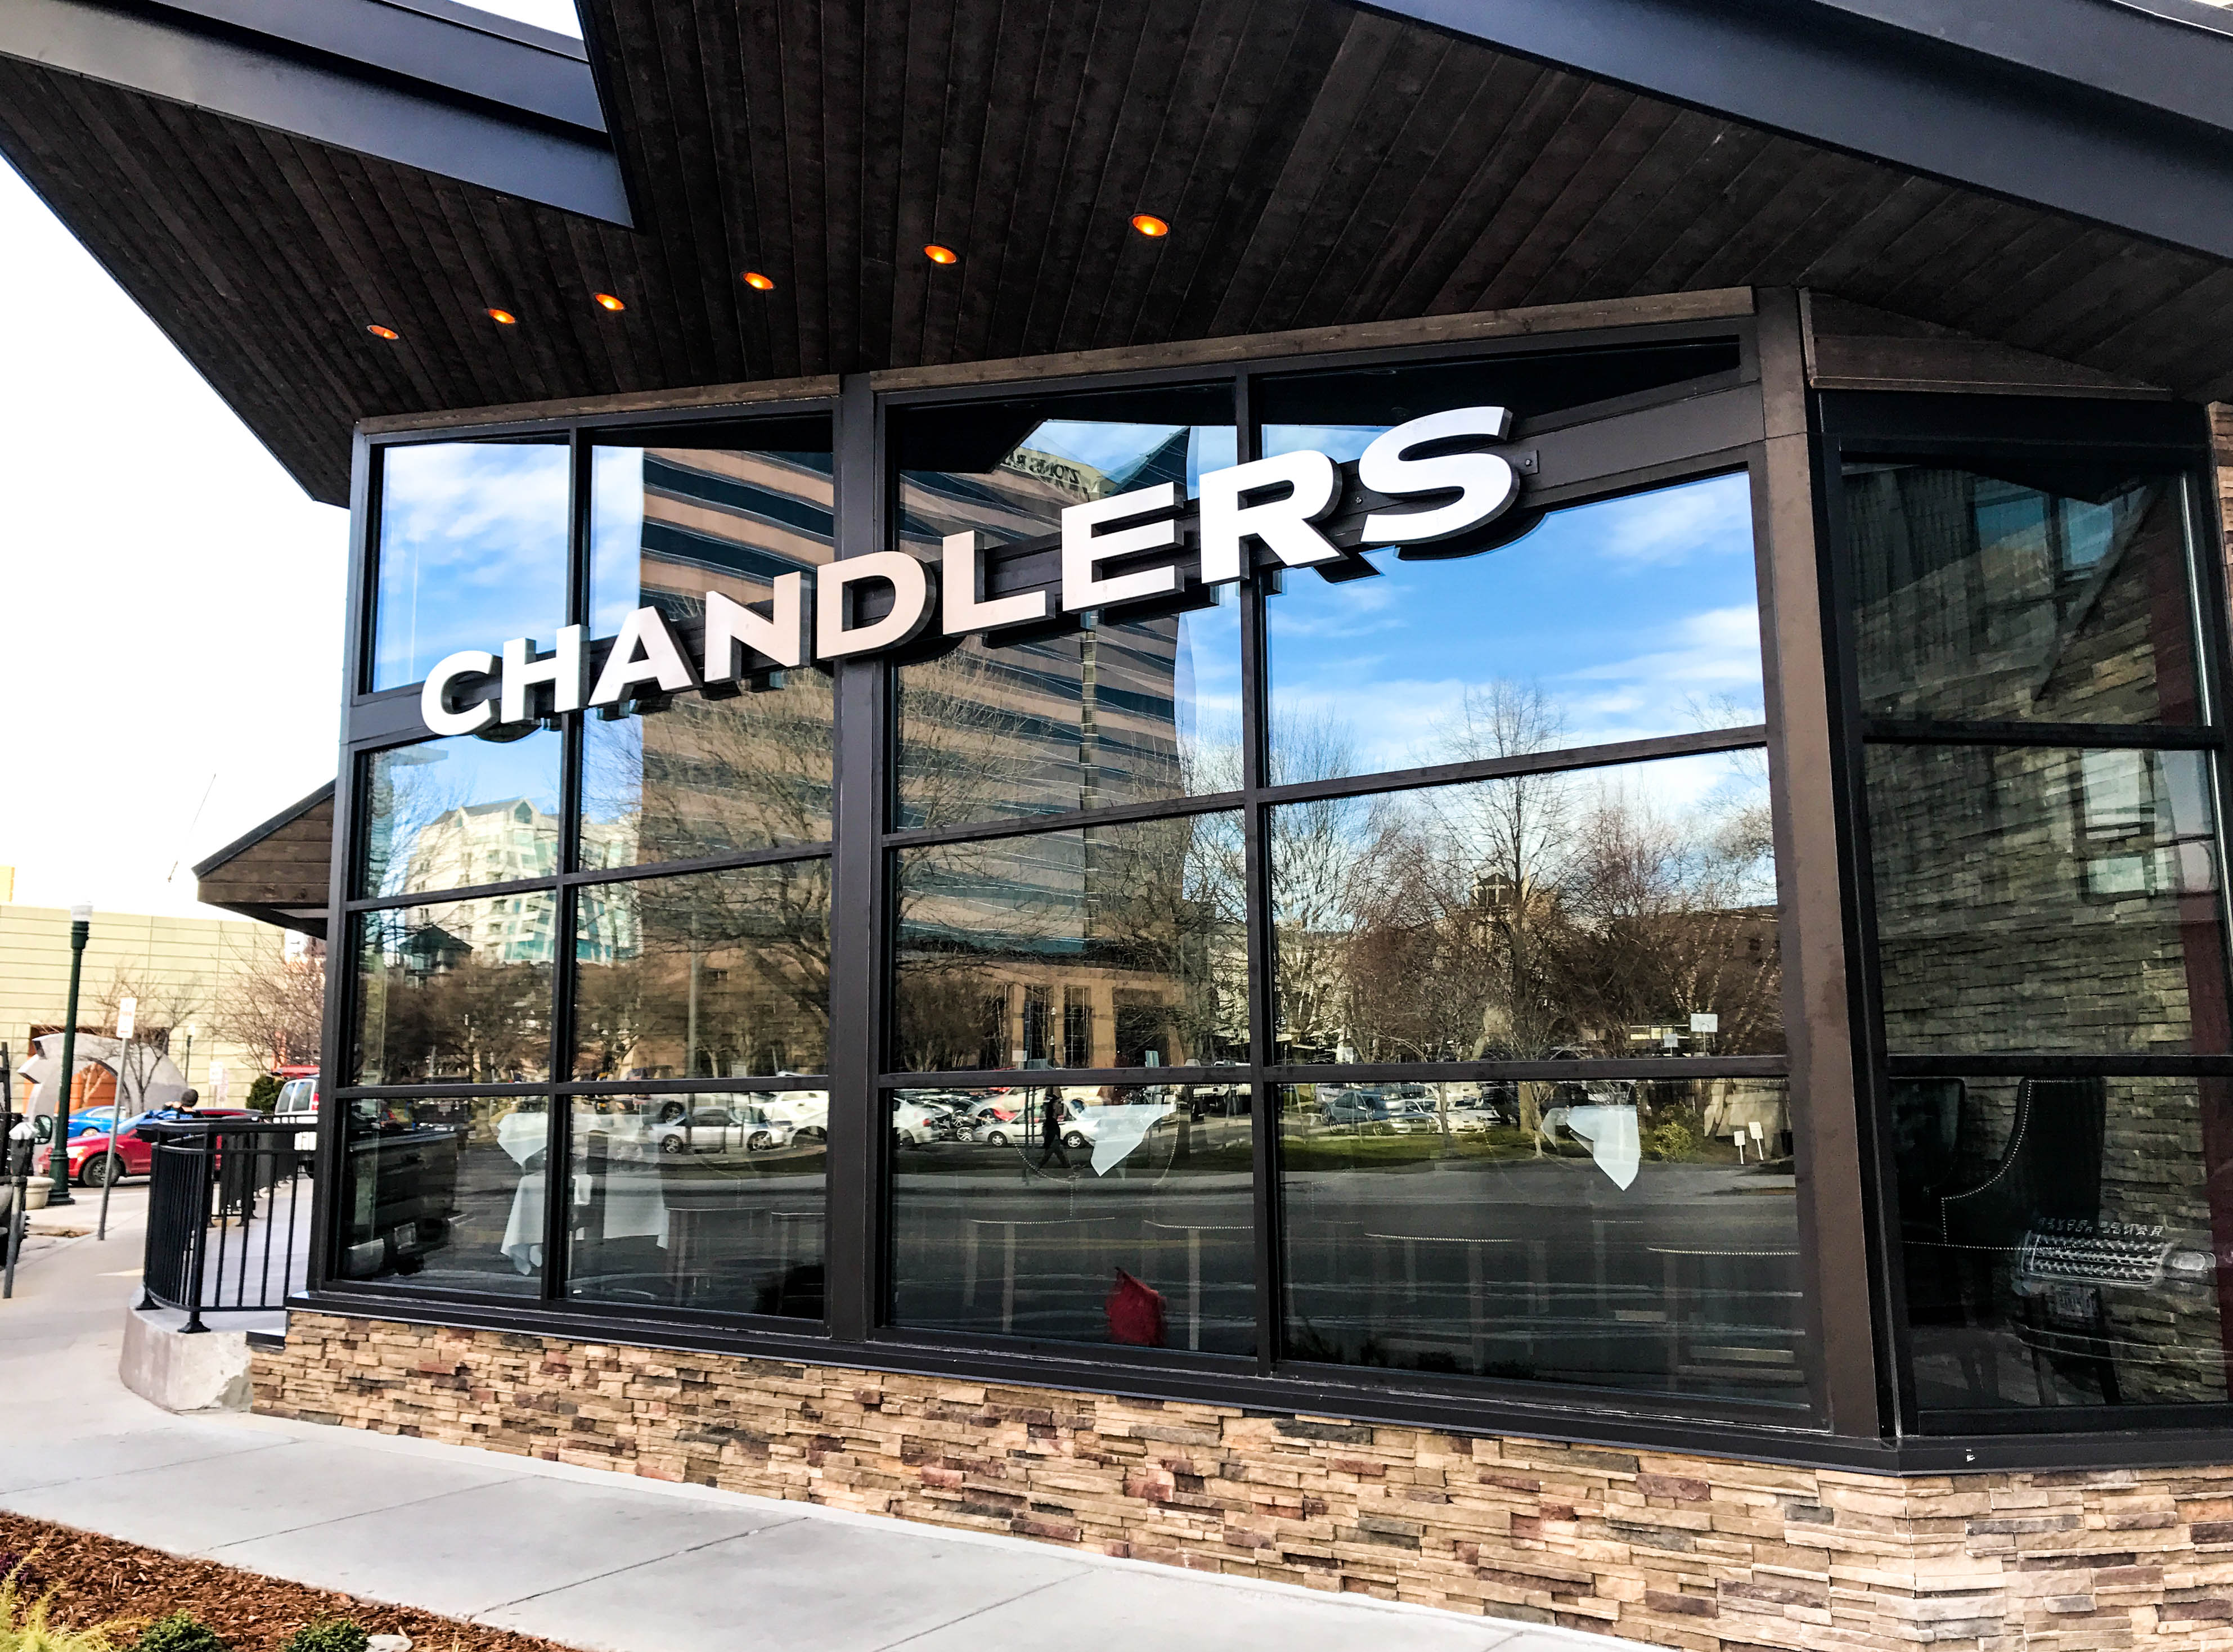 Chandlers - Boise's Best Bars